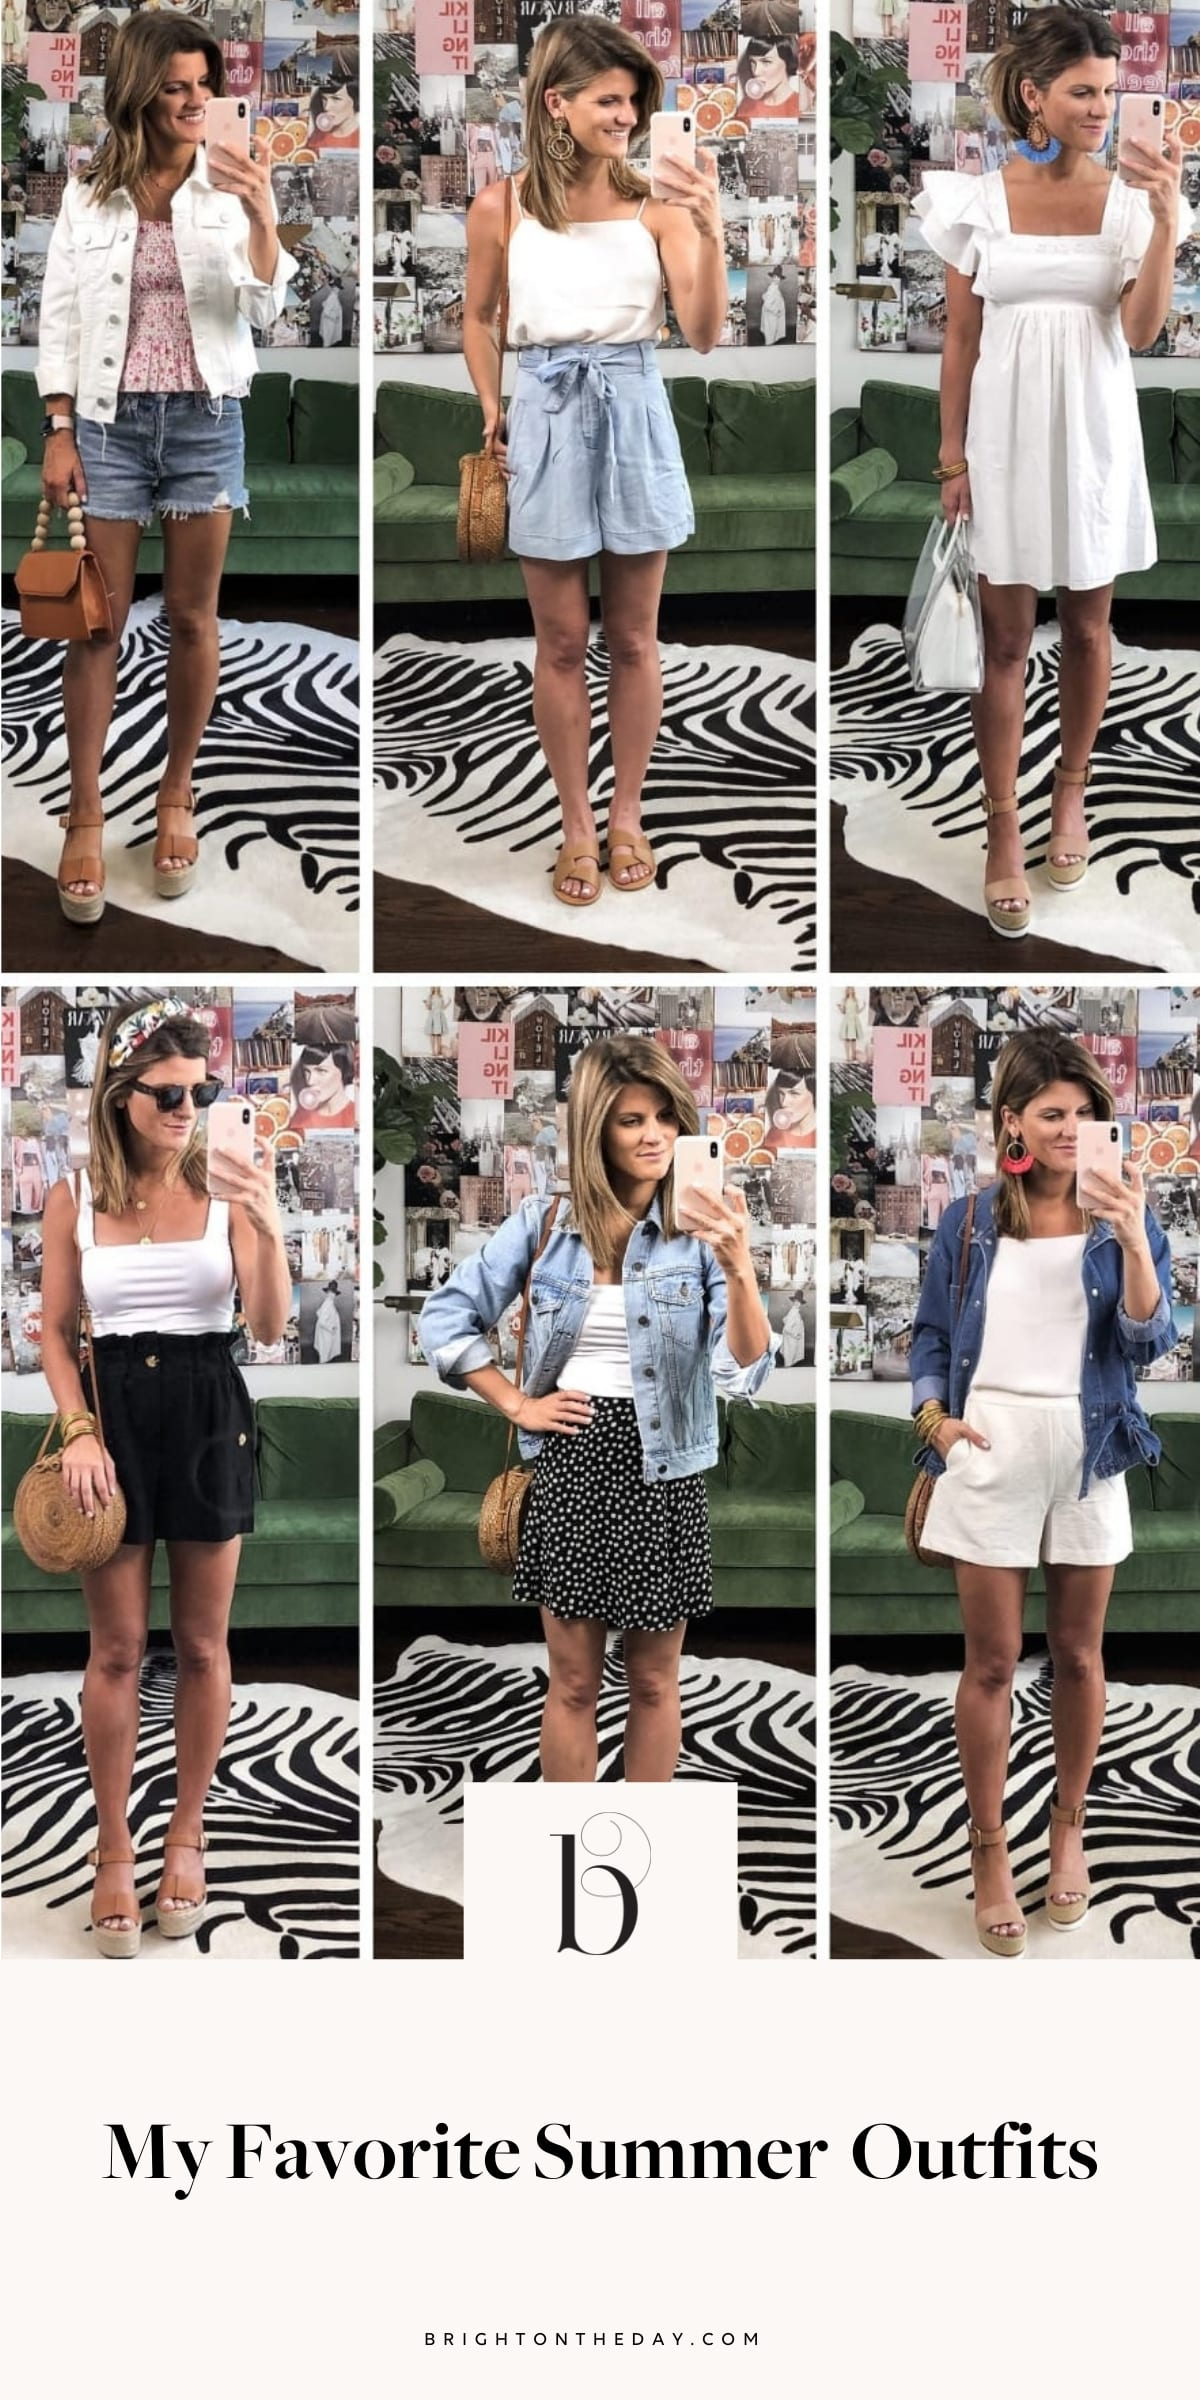 fbaf13e9f2ea 6 of My Favorite Summer Outfits • BrightonTheDay